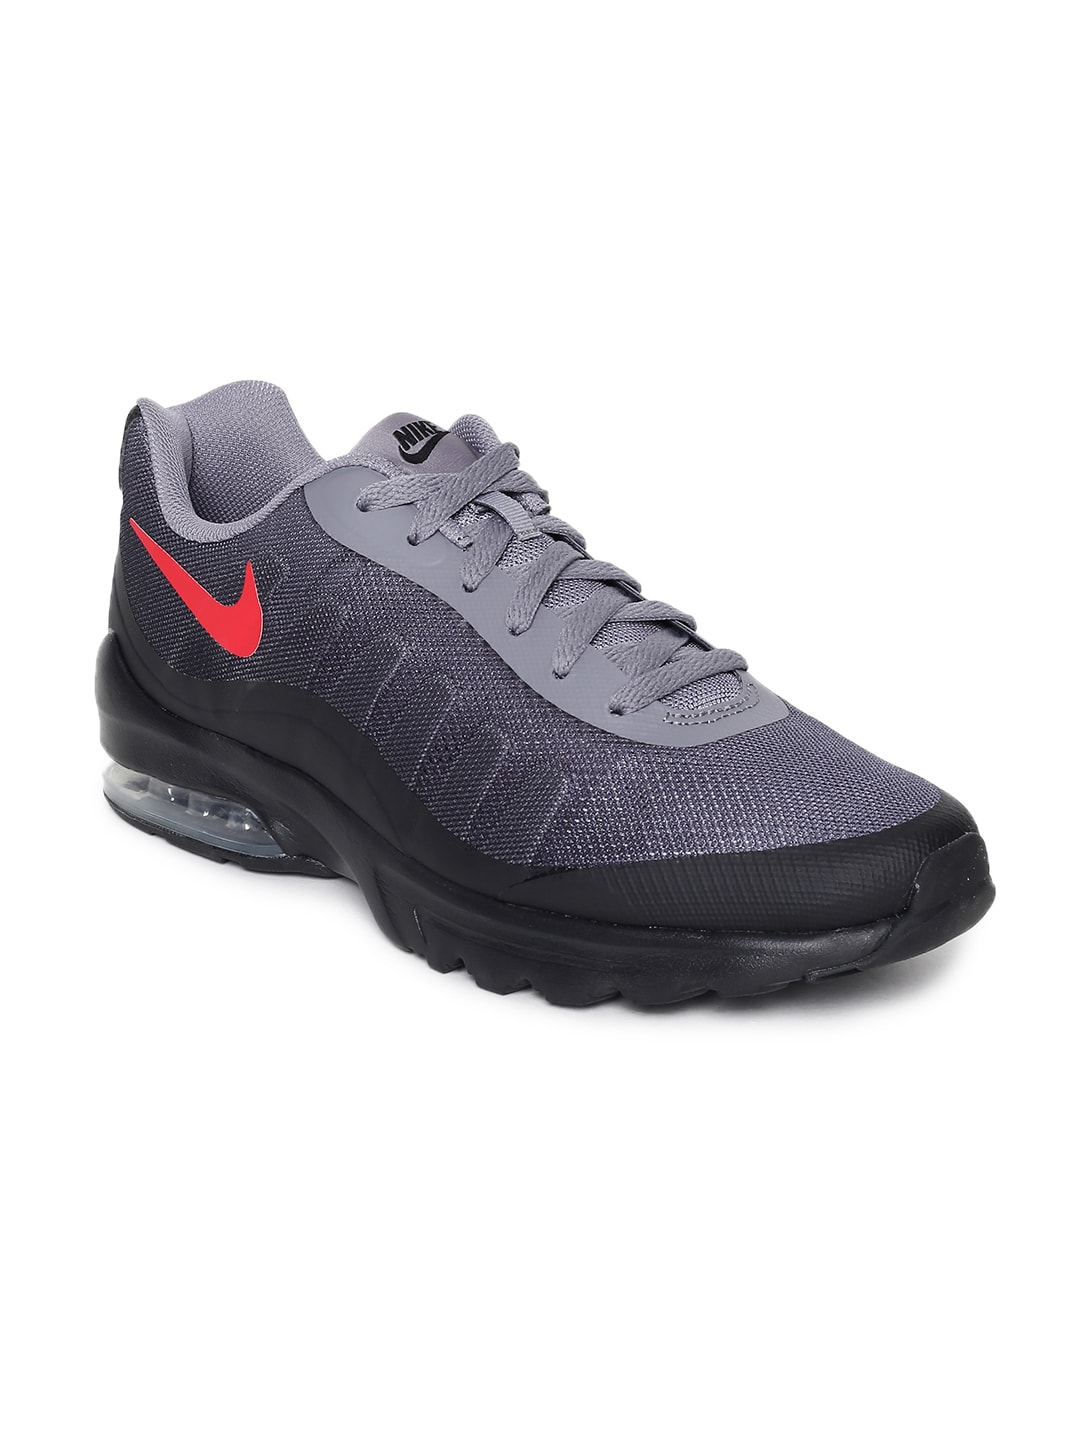 e2f1fe10e9f8 Sports Shoes for Men - Buy Men Sports Shoes Online in India - Myntra